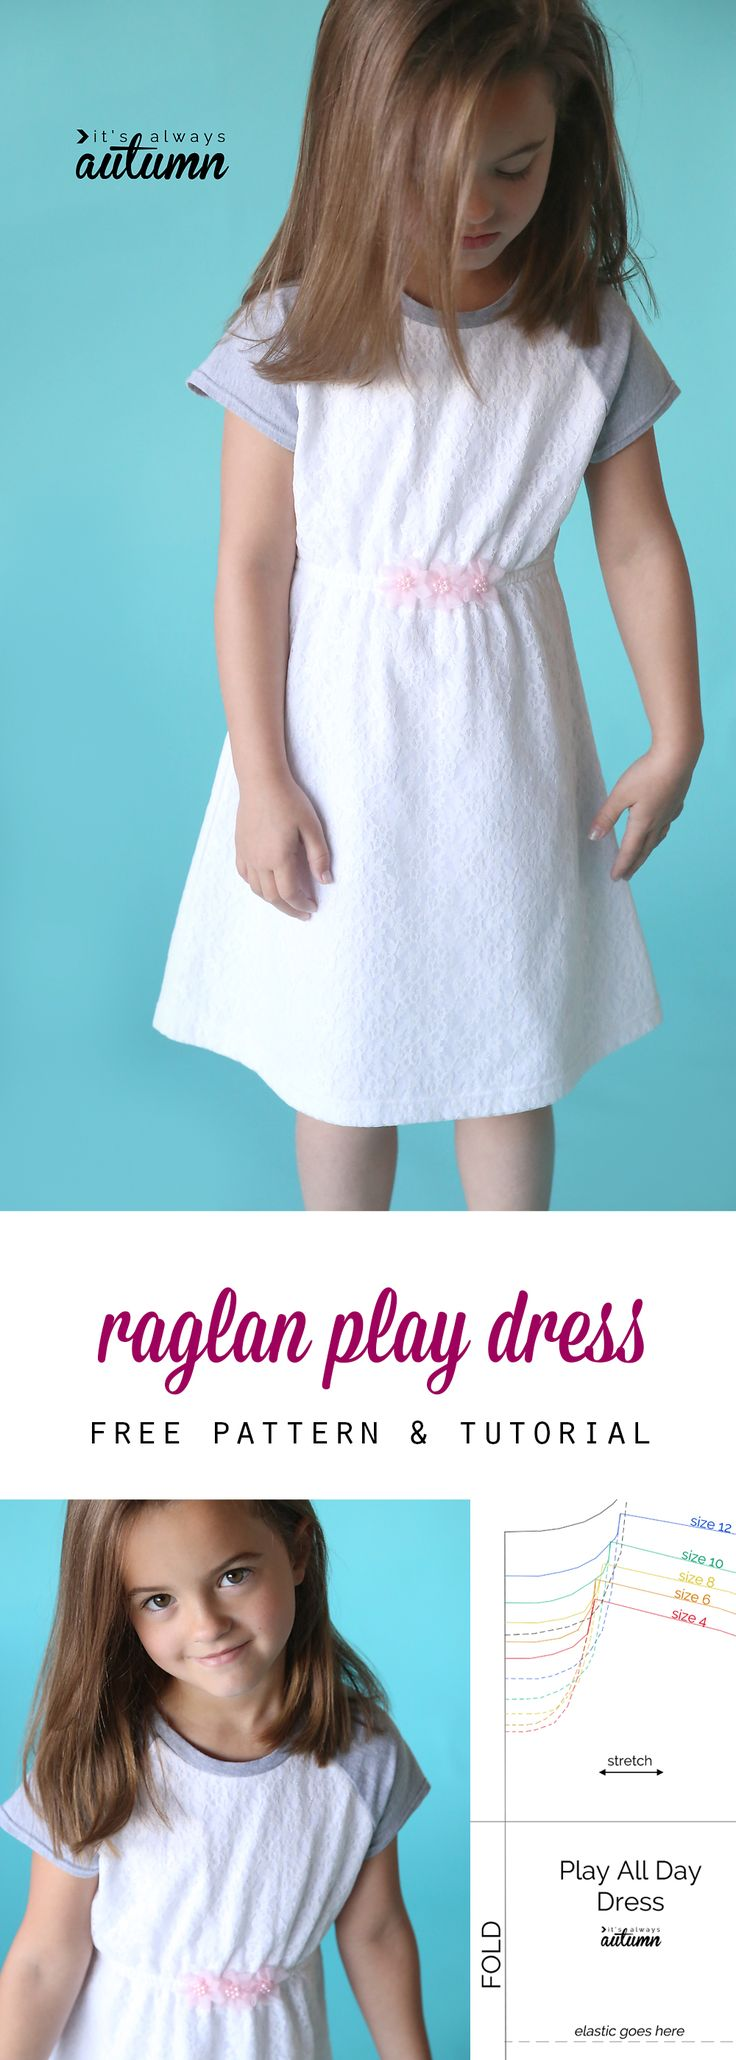 584 best sew for girls images on pinterest sewing for kids the play all day dress free pattern wraglan sleeves kids sewing jeuxipadfo Gallery